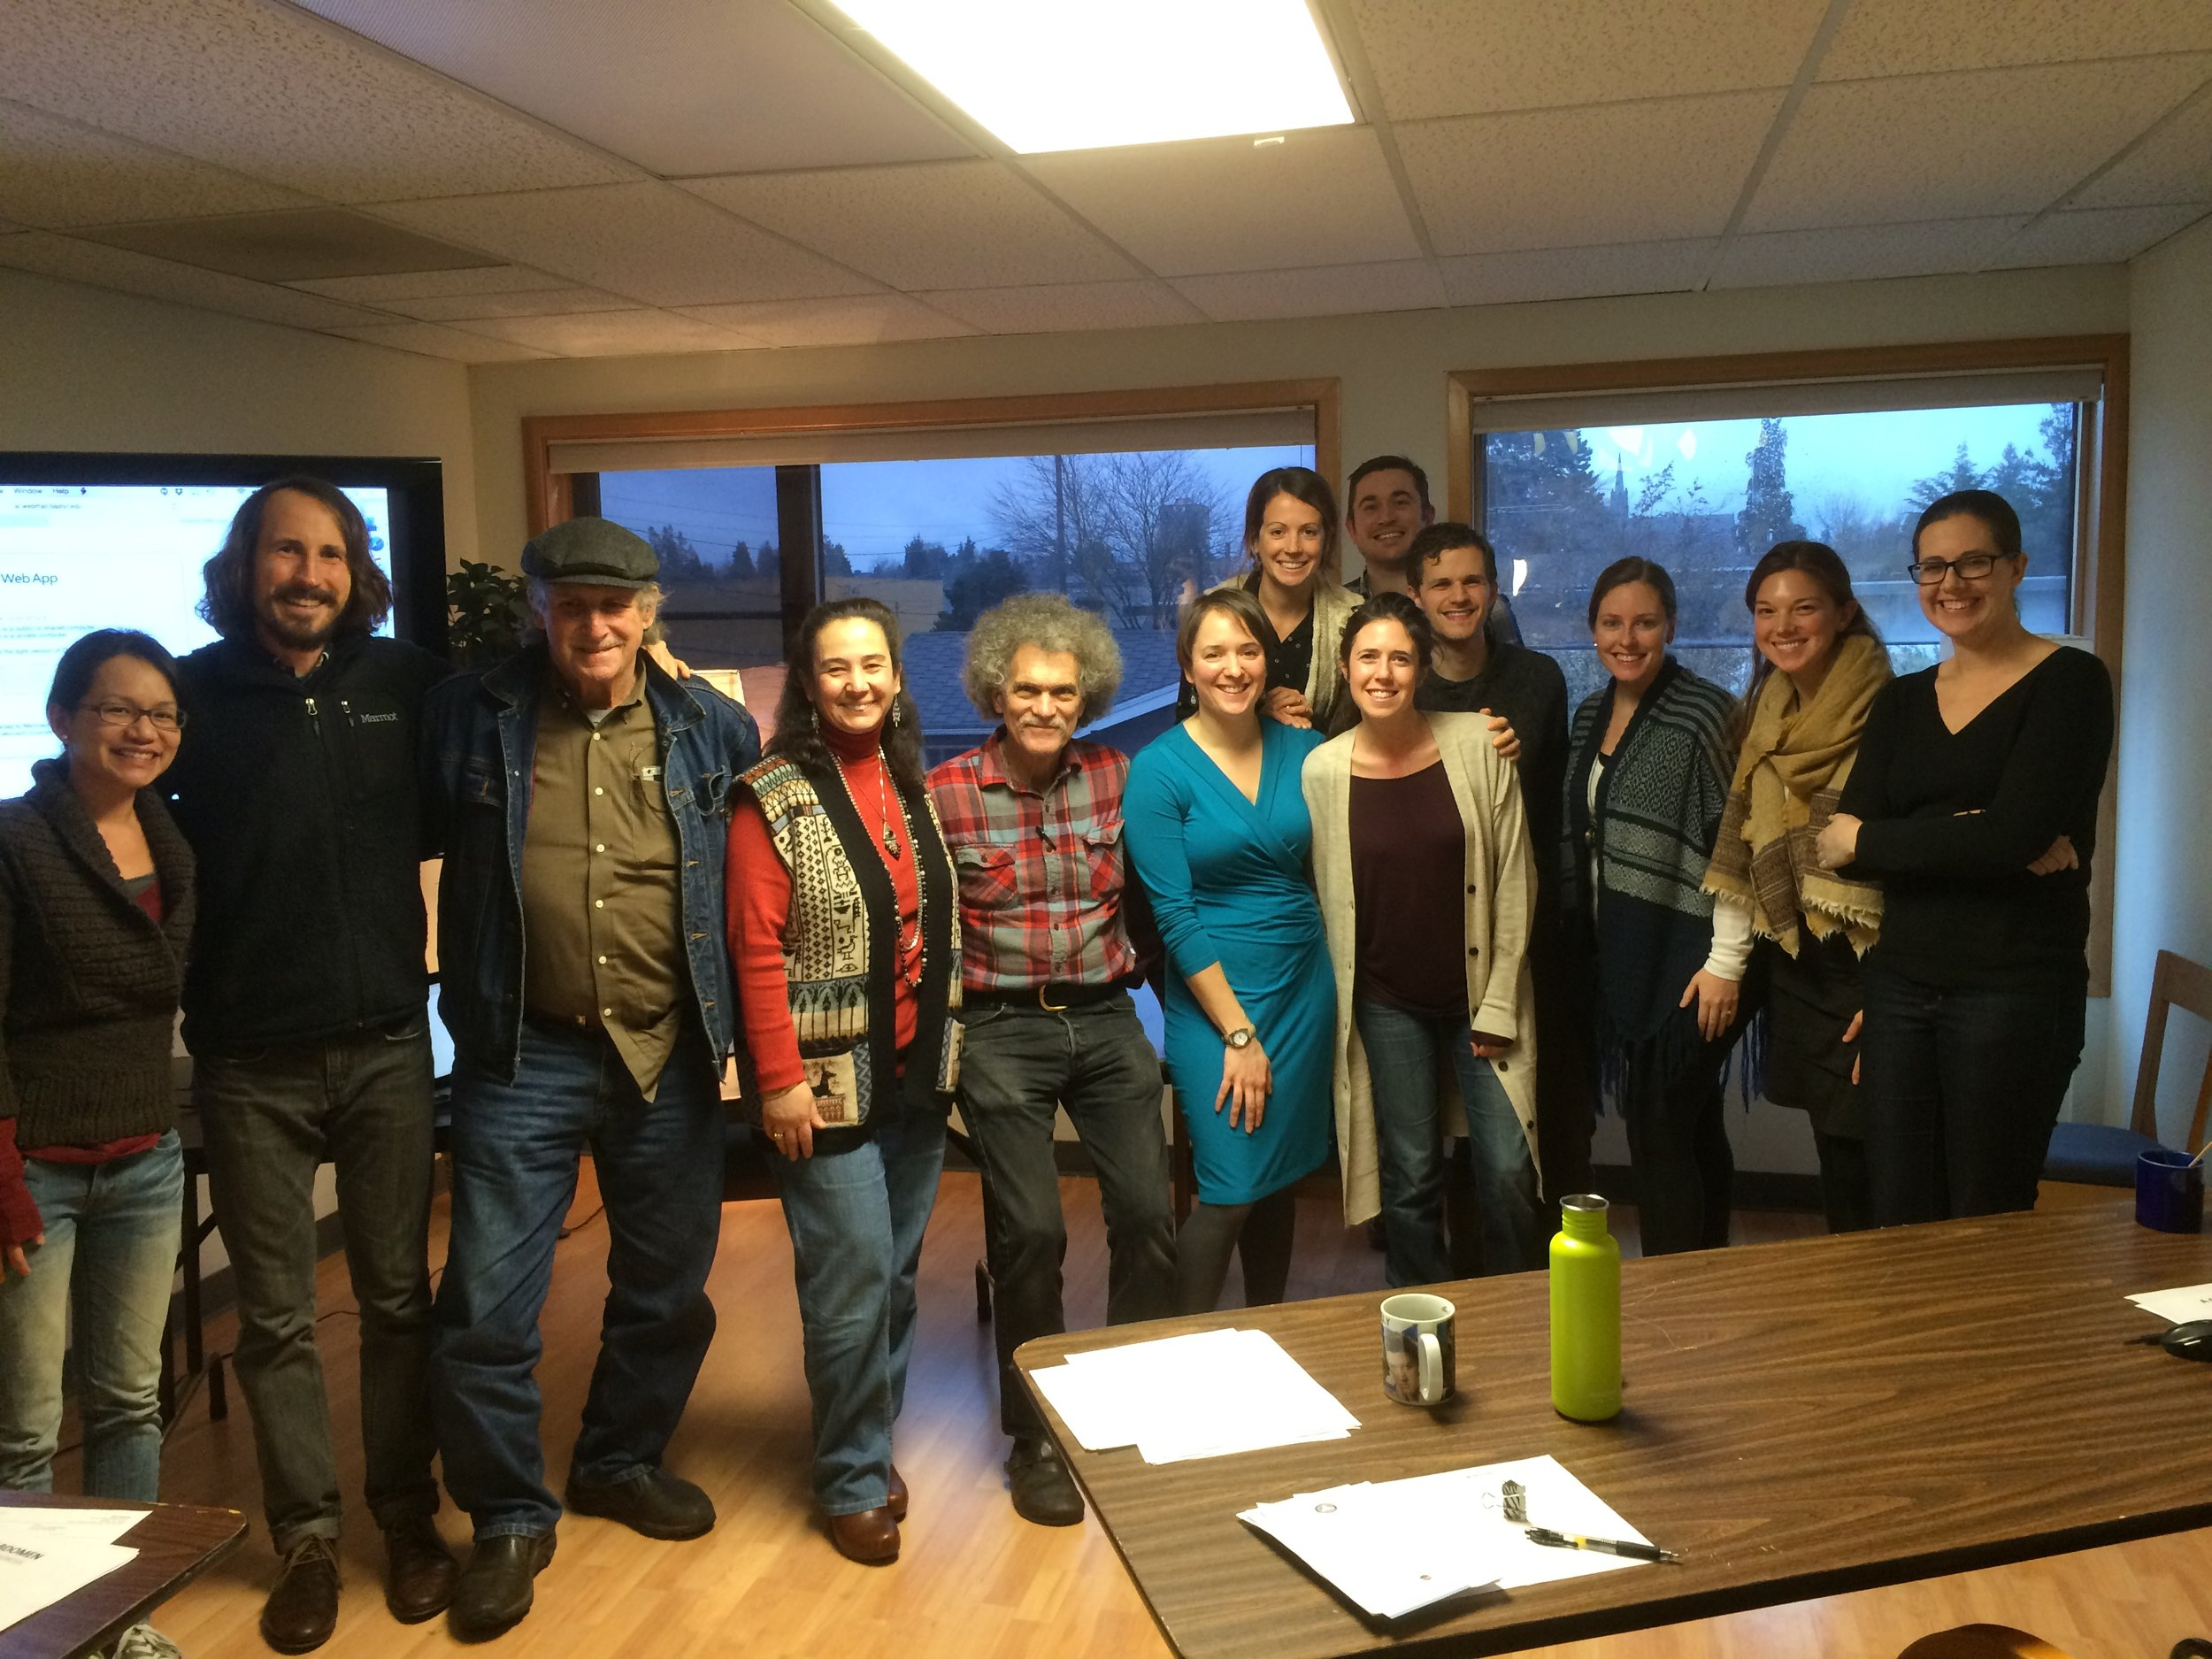 Practicum #4 - Group Photo - Seattle Healing Arts Center - January 2016